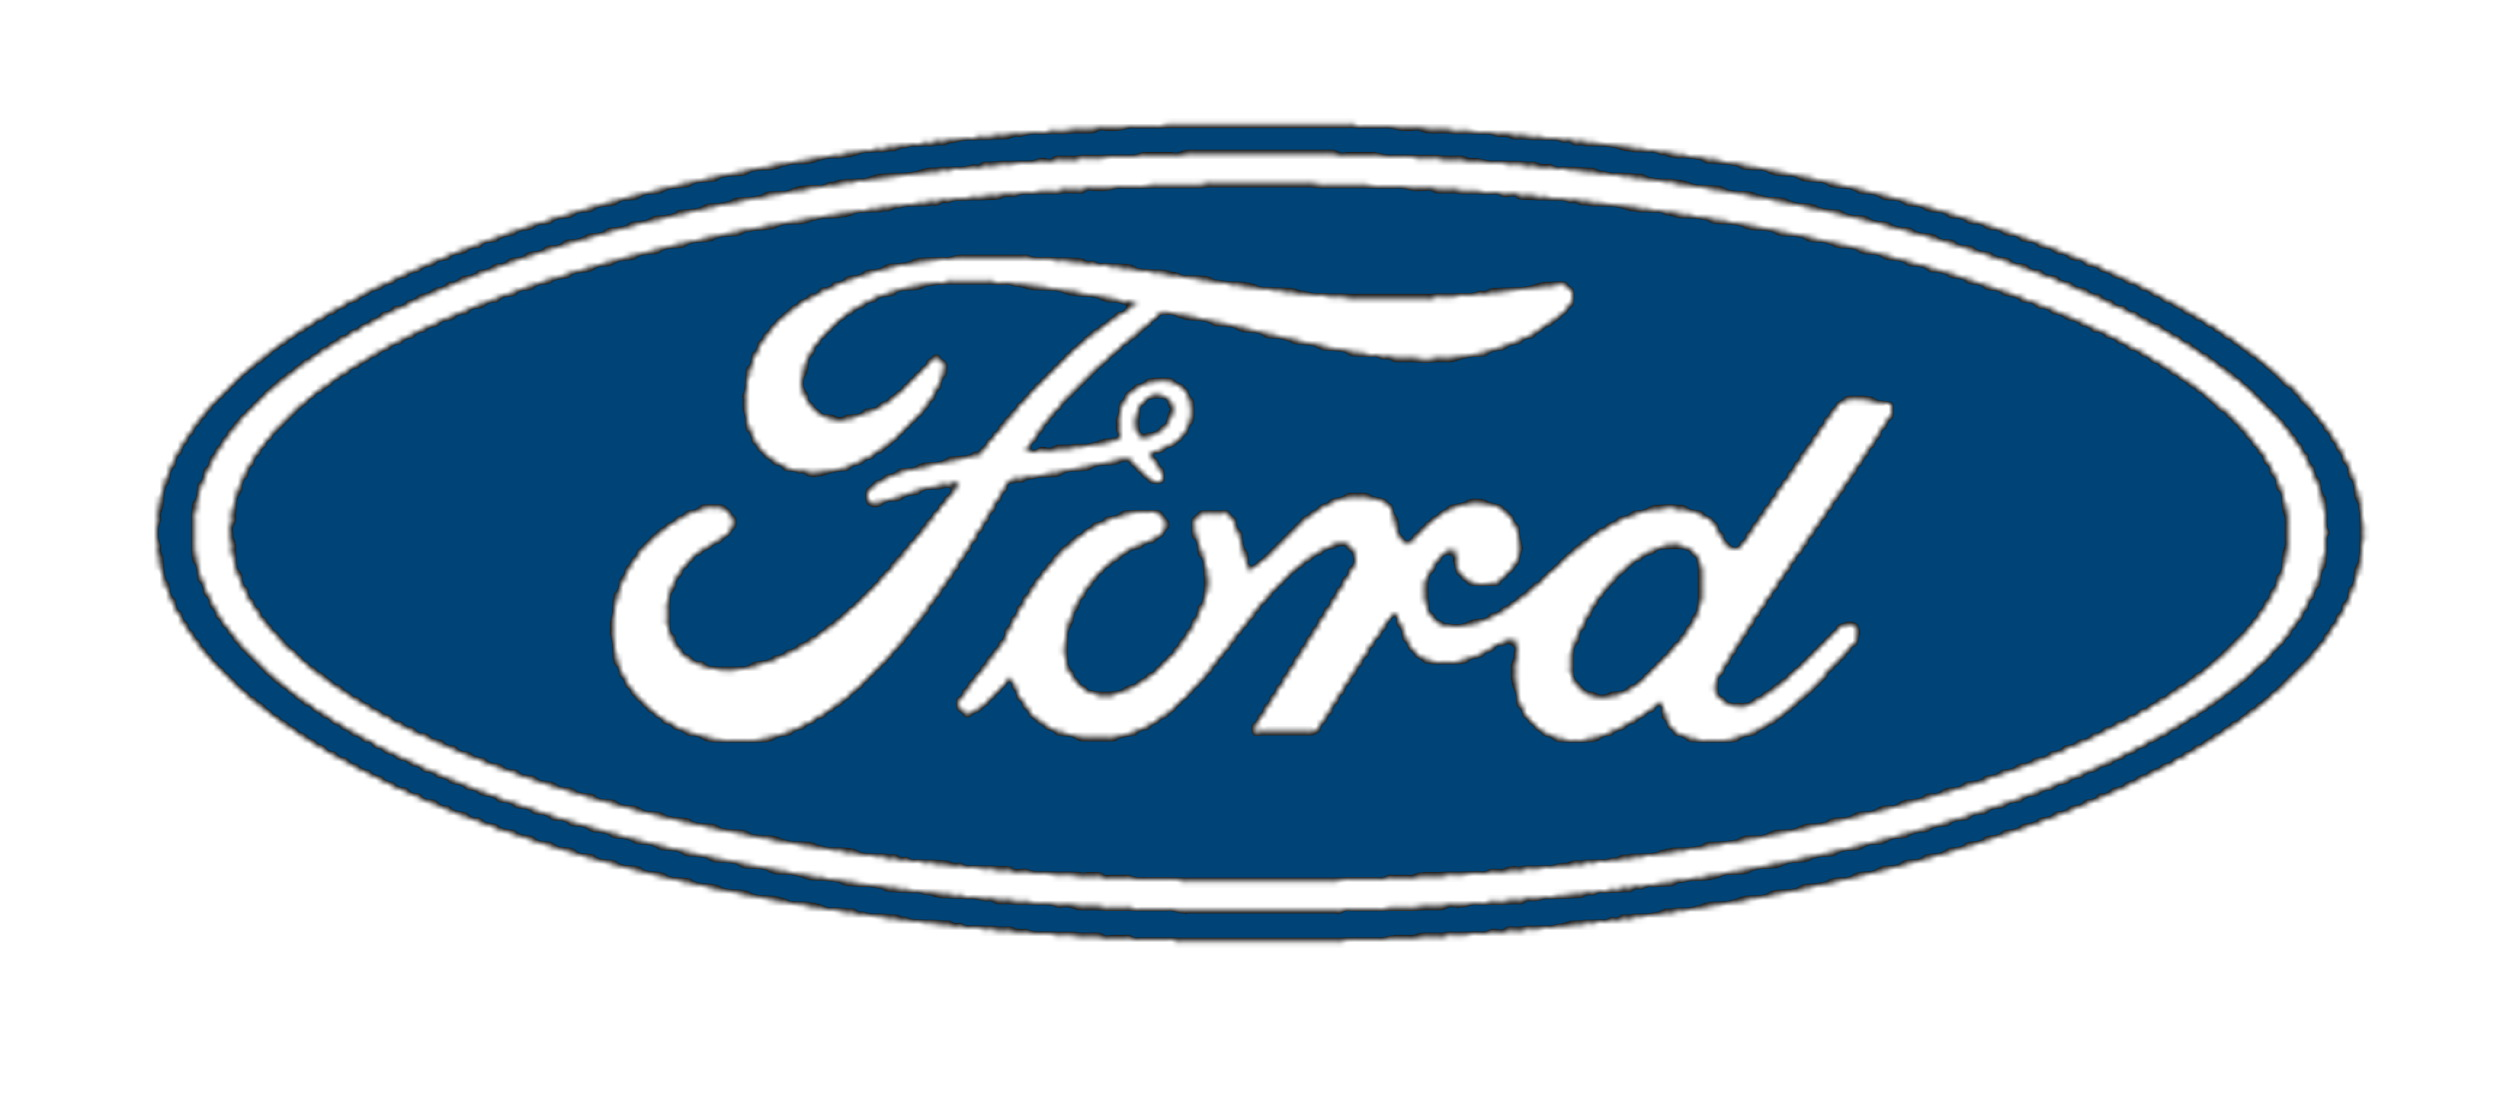 Color Of The Ford Logo